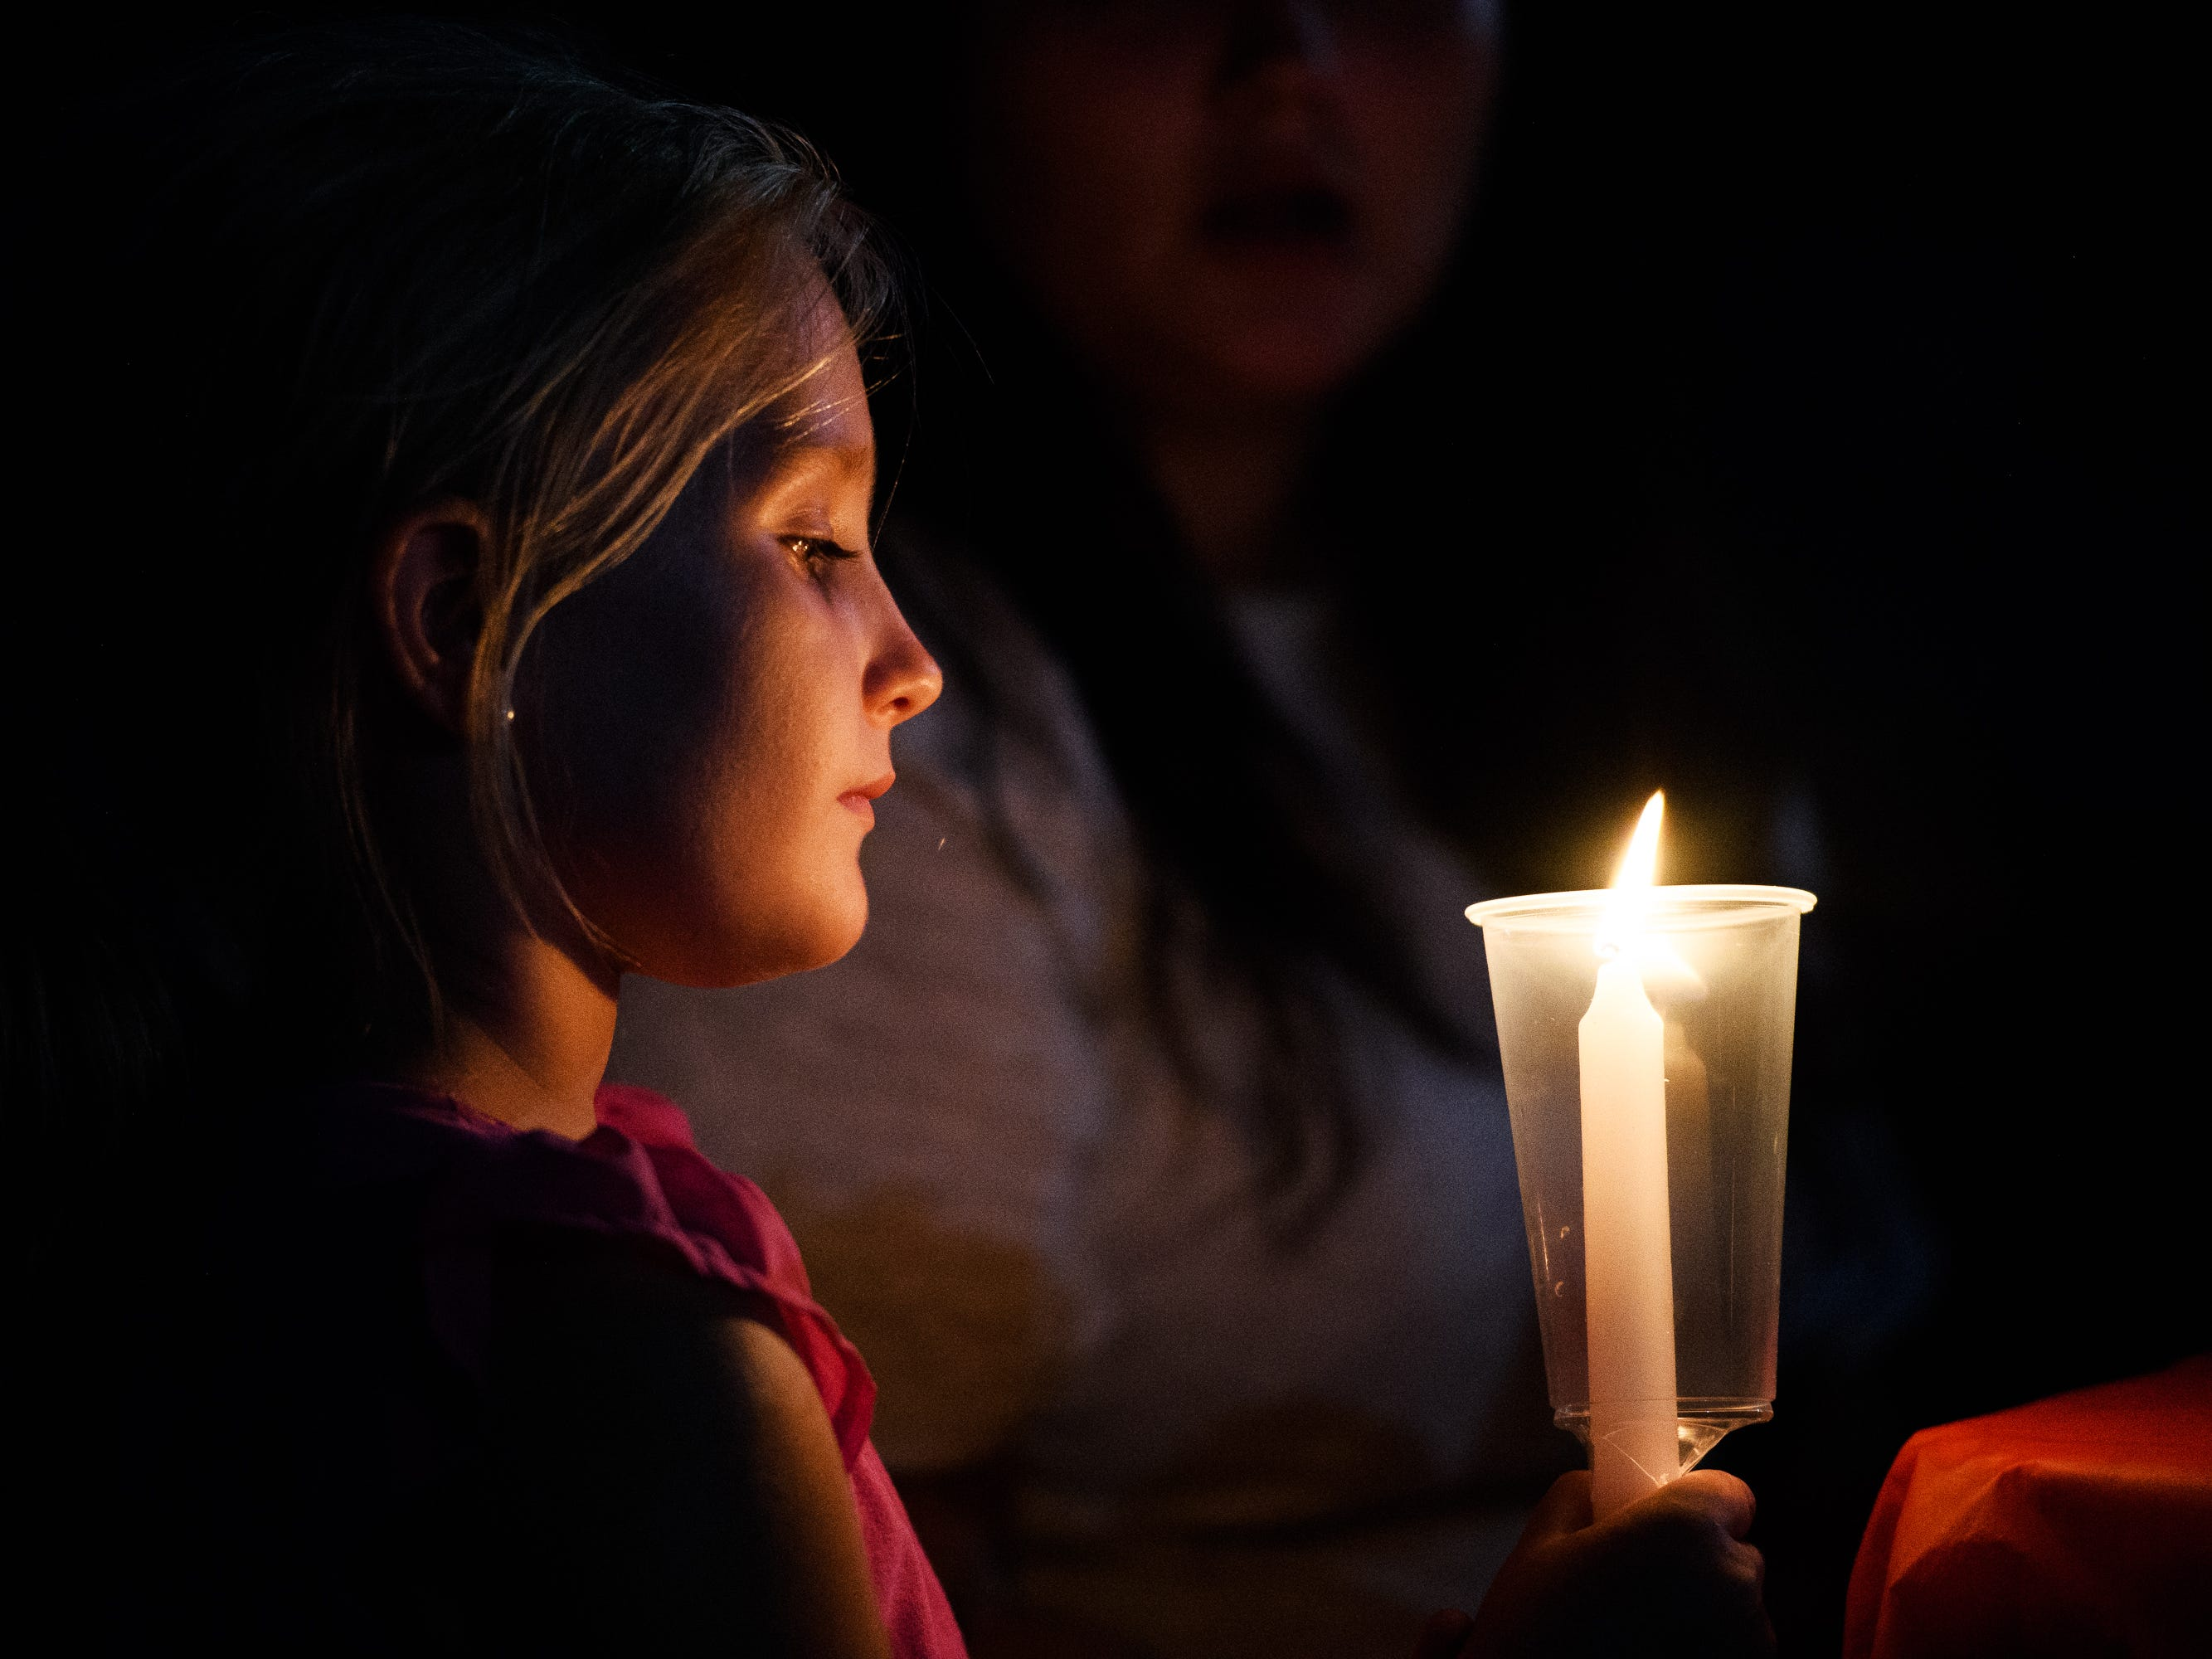 Madysen XXX, holds a candle during a vigil for her uncle, Jared Johns, at Simpsonville City Park on Sunday, Sept. 23, 2018.